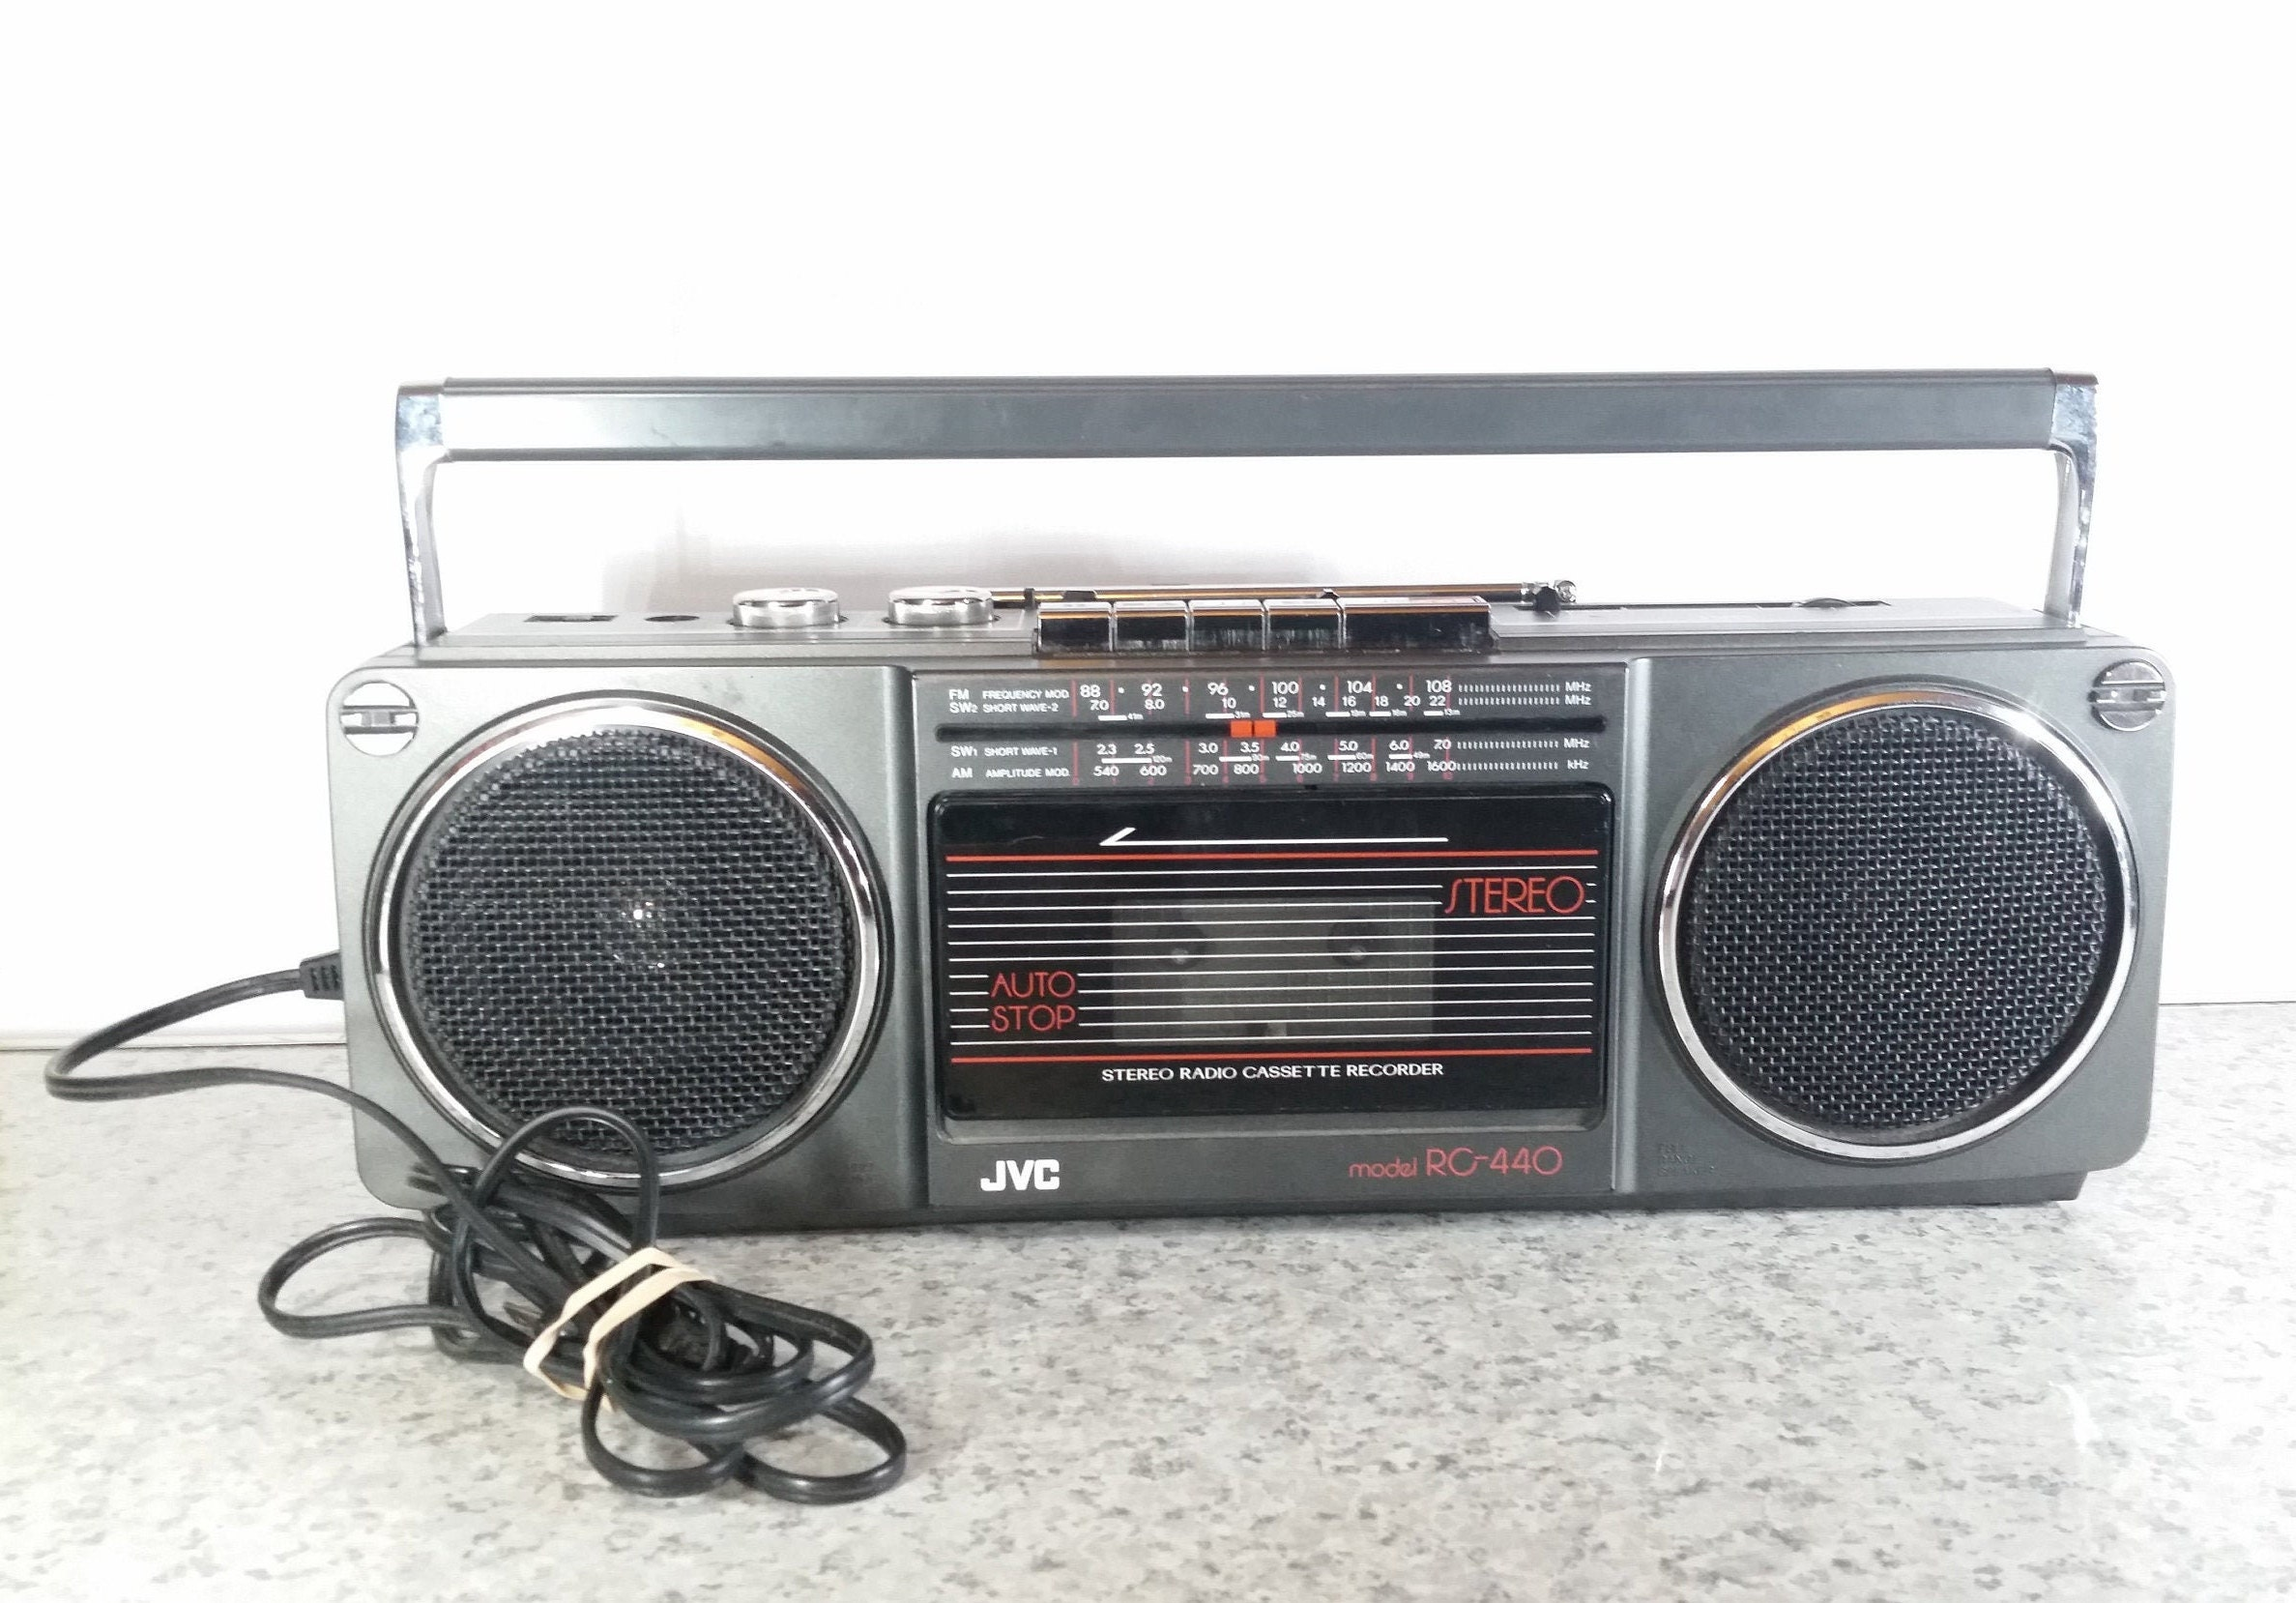 JVC RC-440 Boombox Radio Cassette Recorder Player Stereo Tested Works Am Fm  Shortwave Ghetto Blaster VTG 1990s Electric Battery Powered